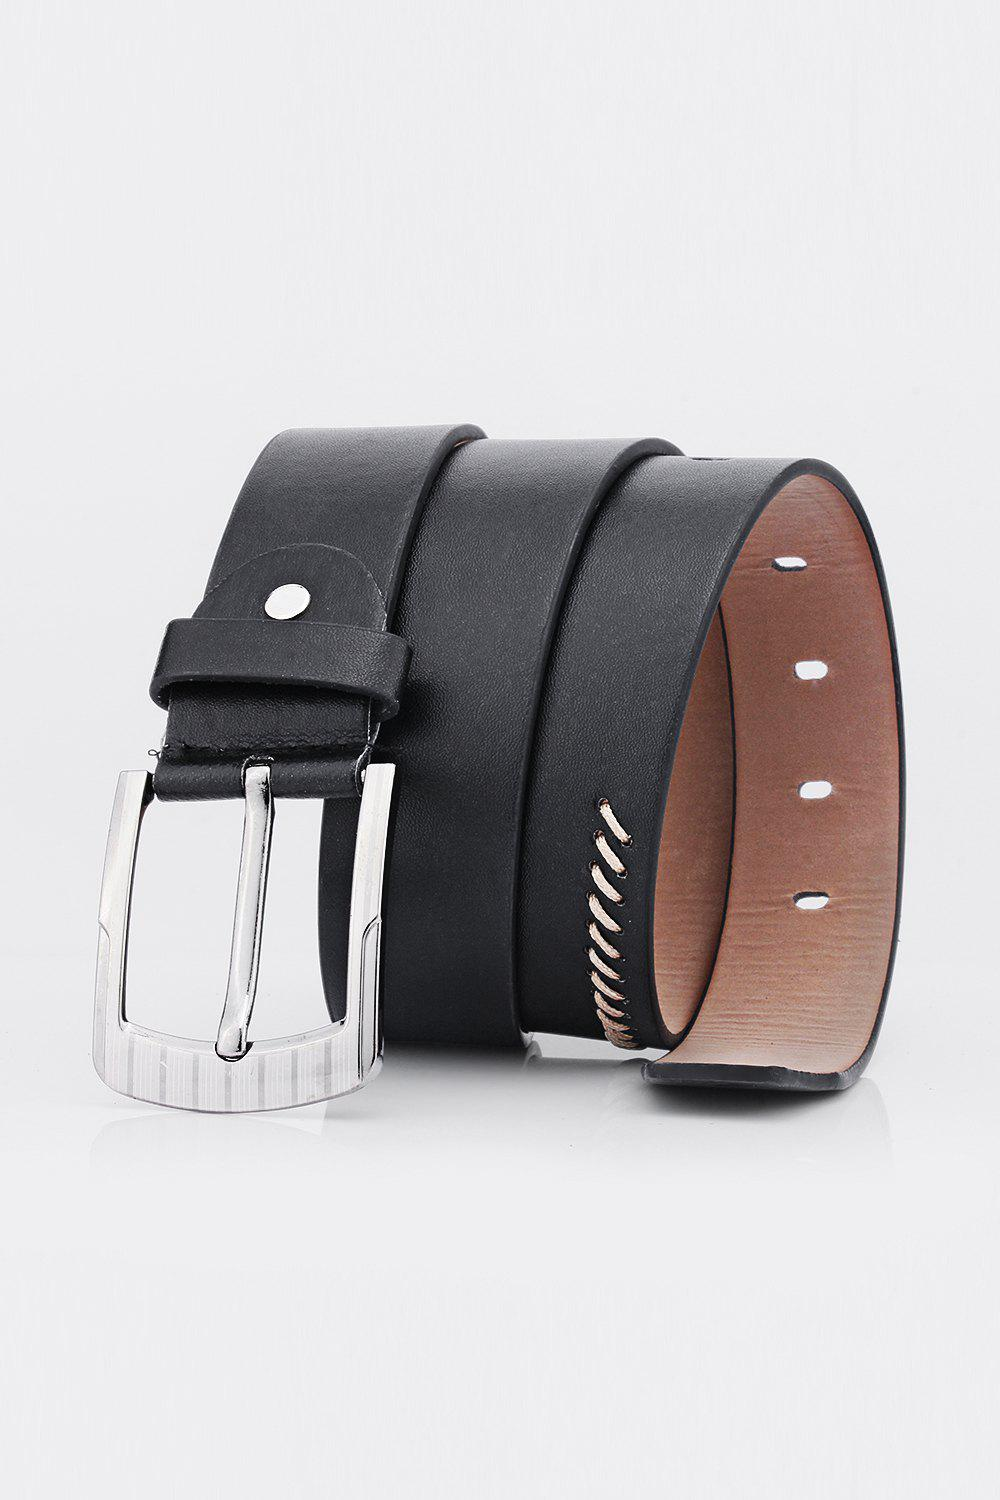 Online Pin Buckle Retro Sewing Thread Wide Belt